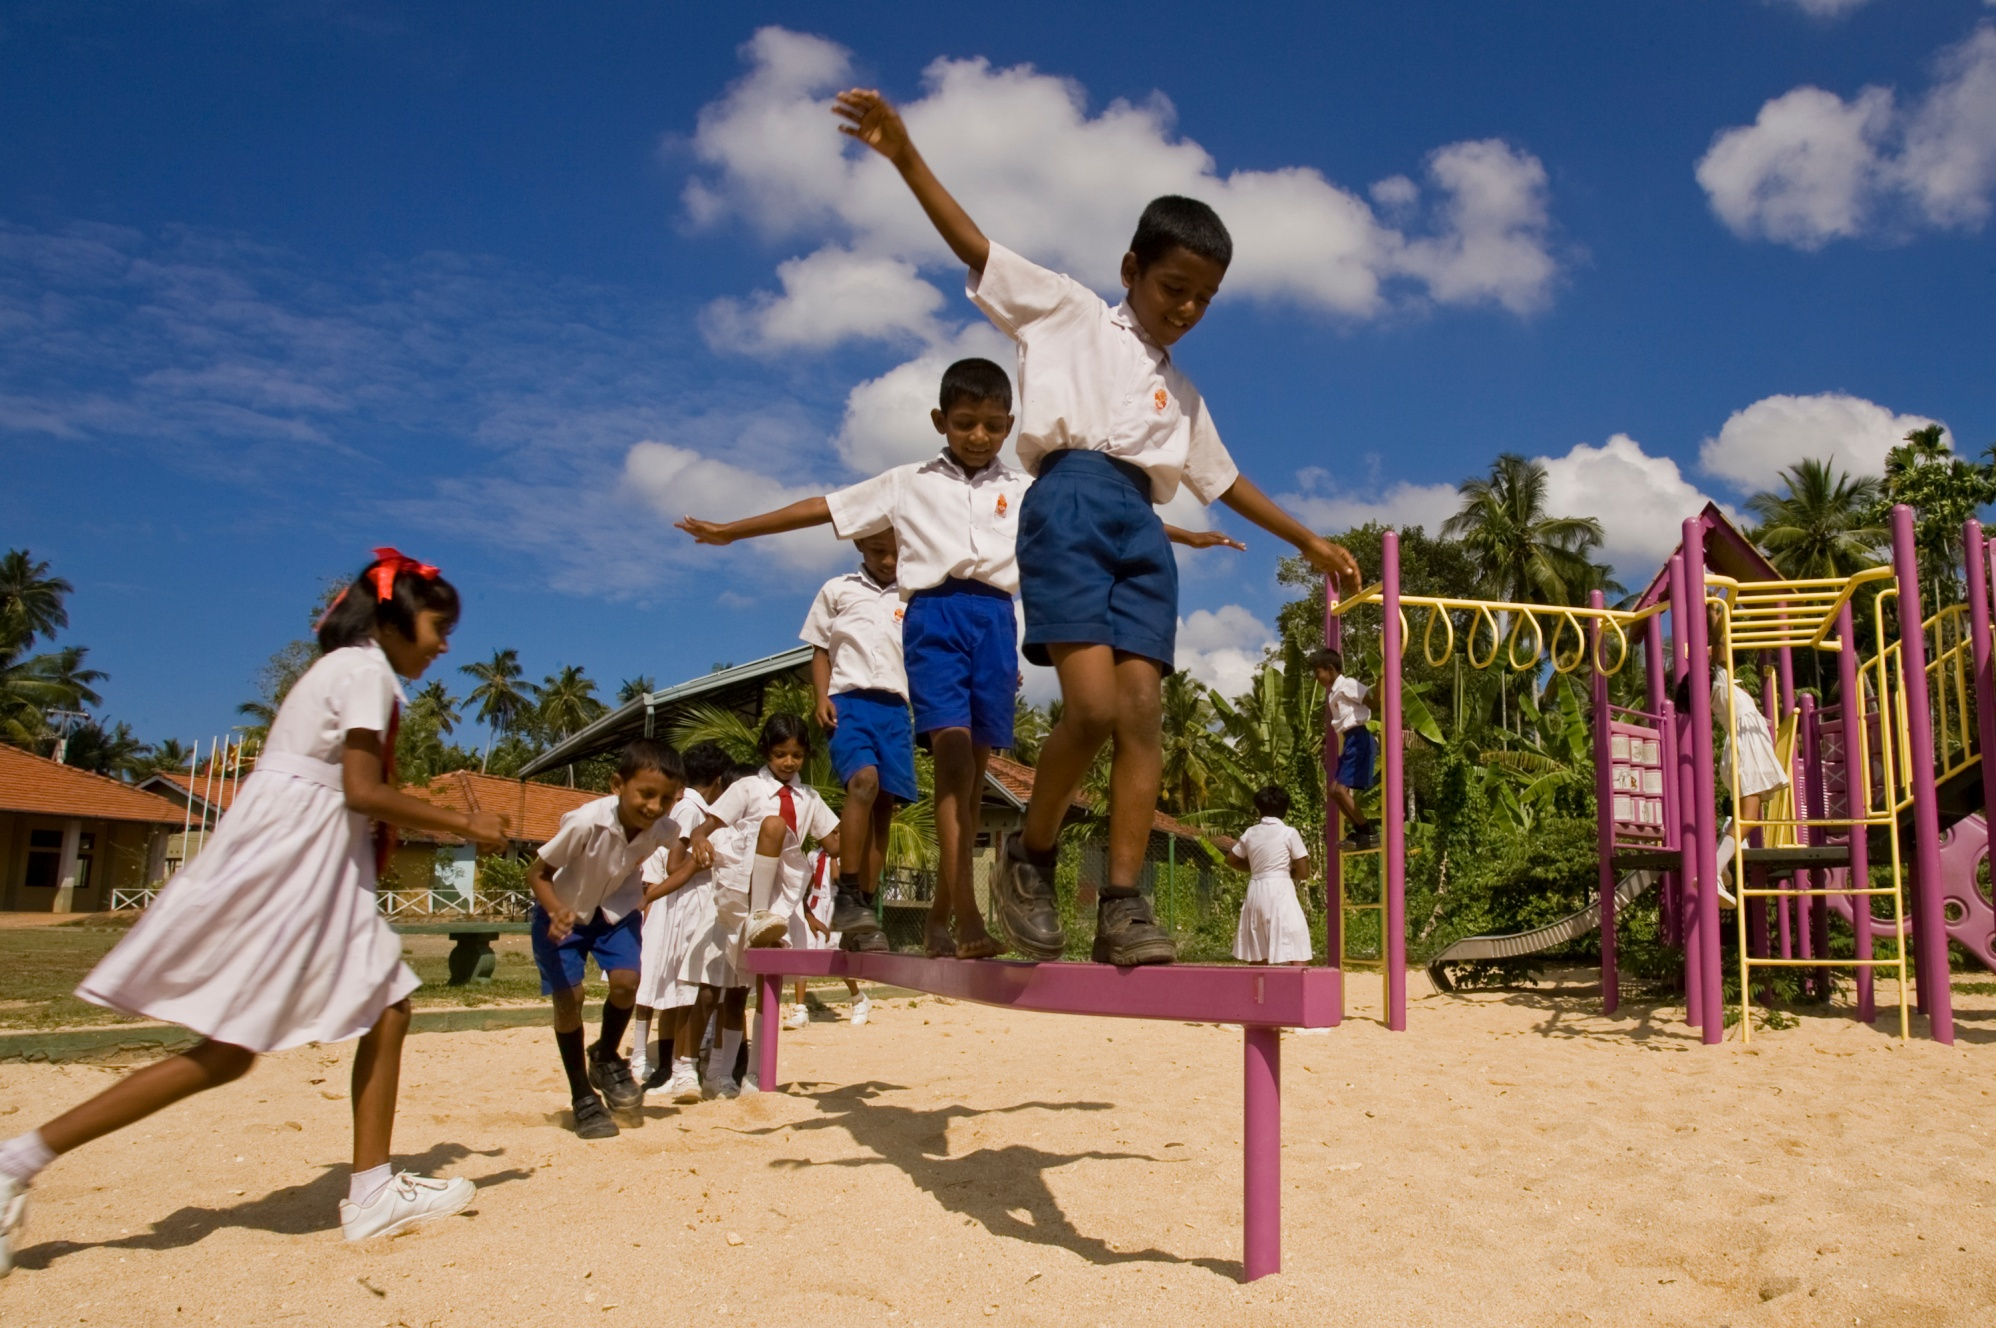 Students on the playground at Dharmarama Kanishta Vidyalaya in Ahangama, Sri Lanka. This school was rebuilt through the Schools Reawaken project after the 2004 tsunami. District 3220 (Sri Lanka) raised funds for the project and received support from The Rotary Foundation, Standard Chartered Bank, and other contributors. A local Buddhist temple donated the land.